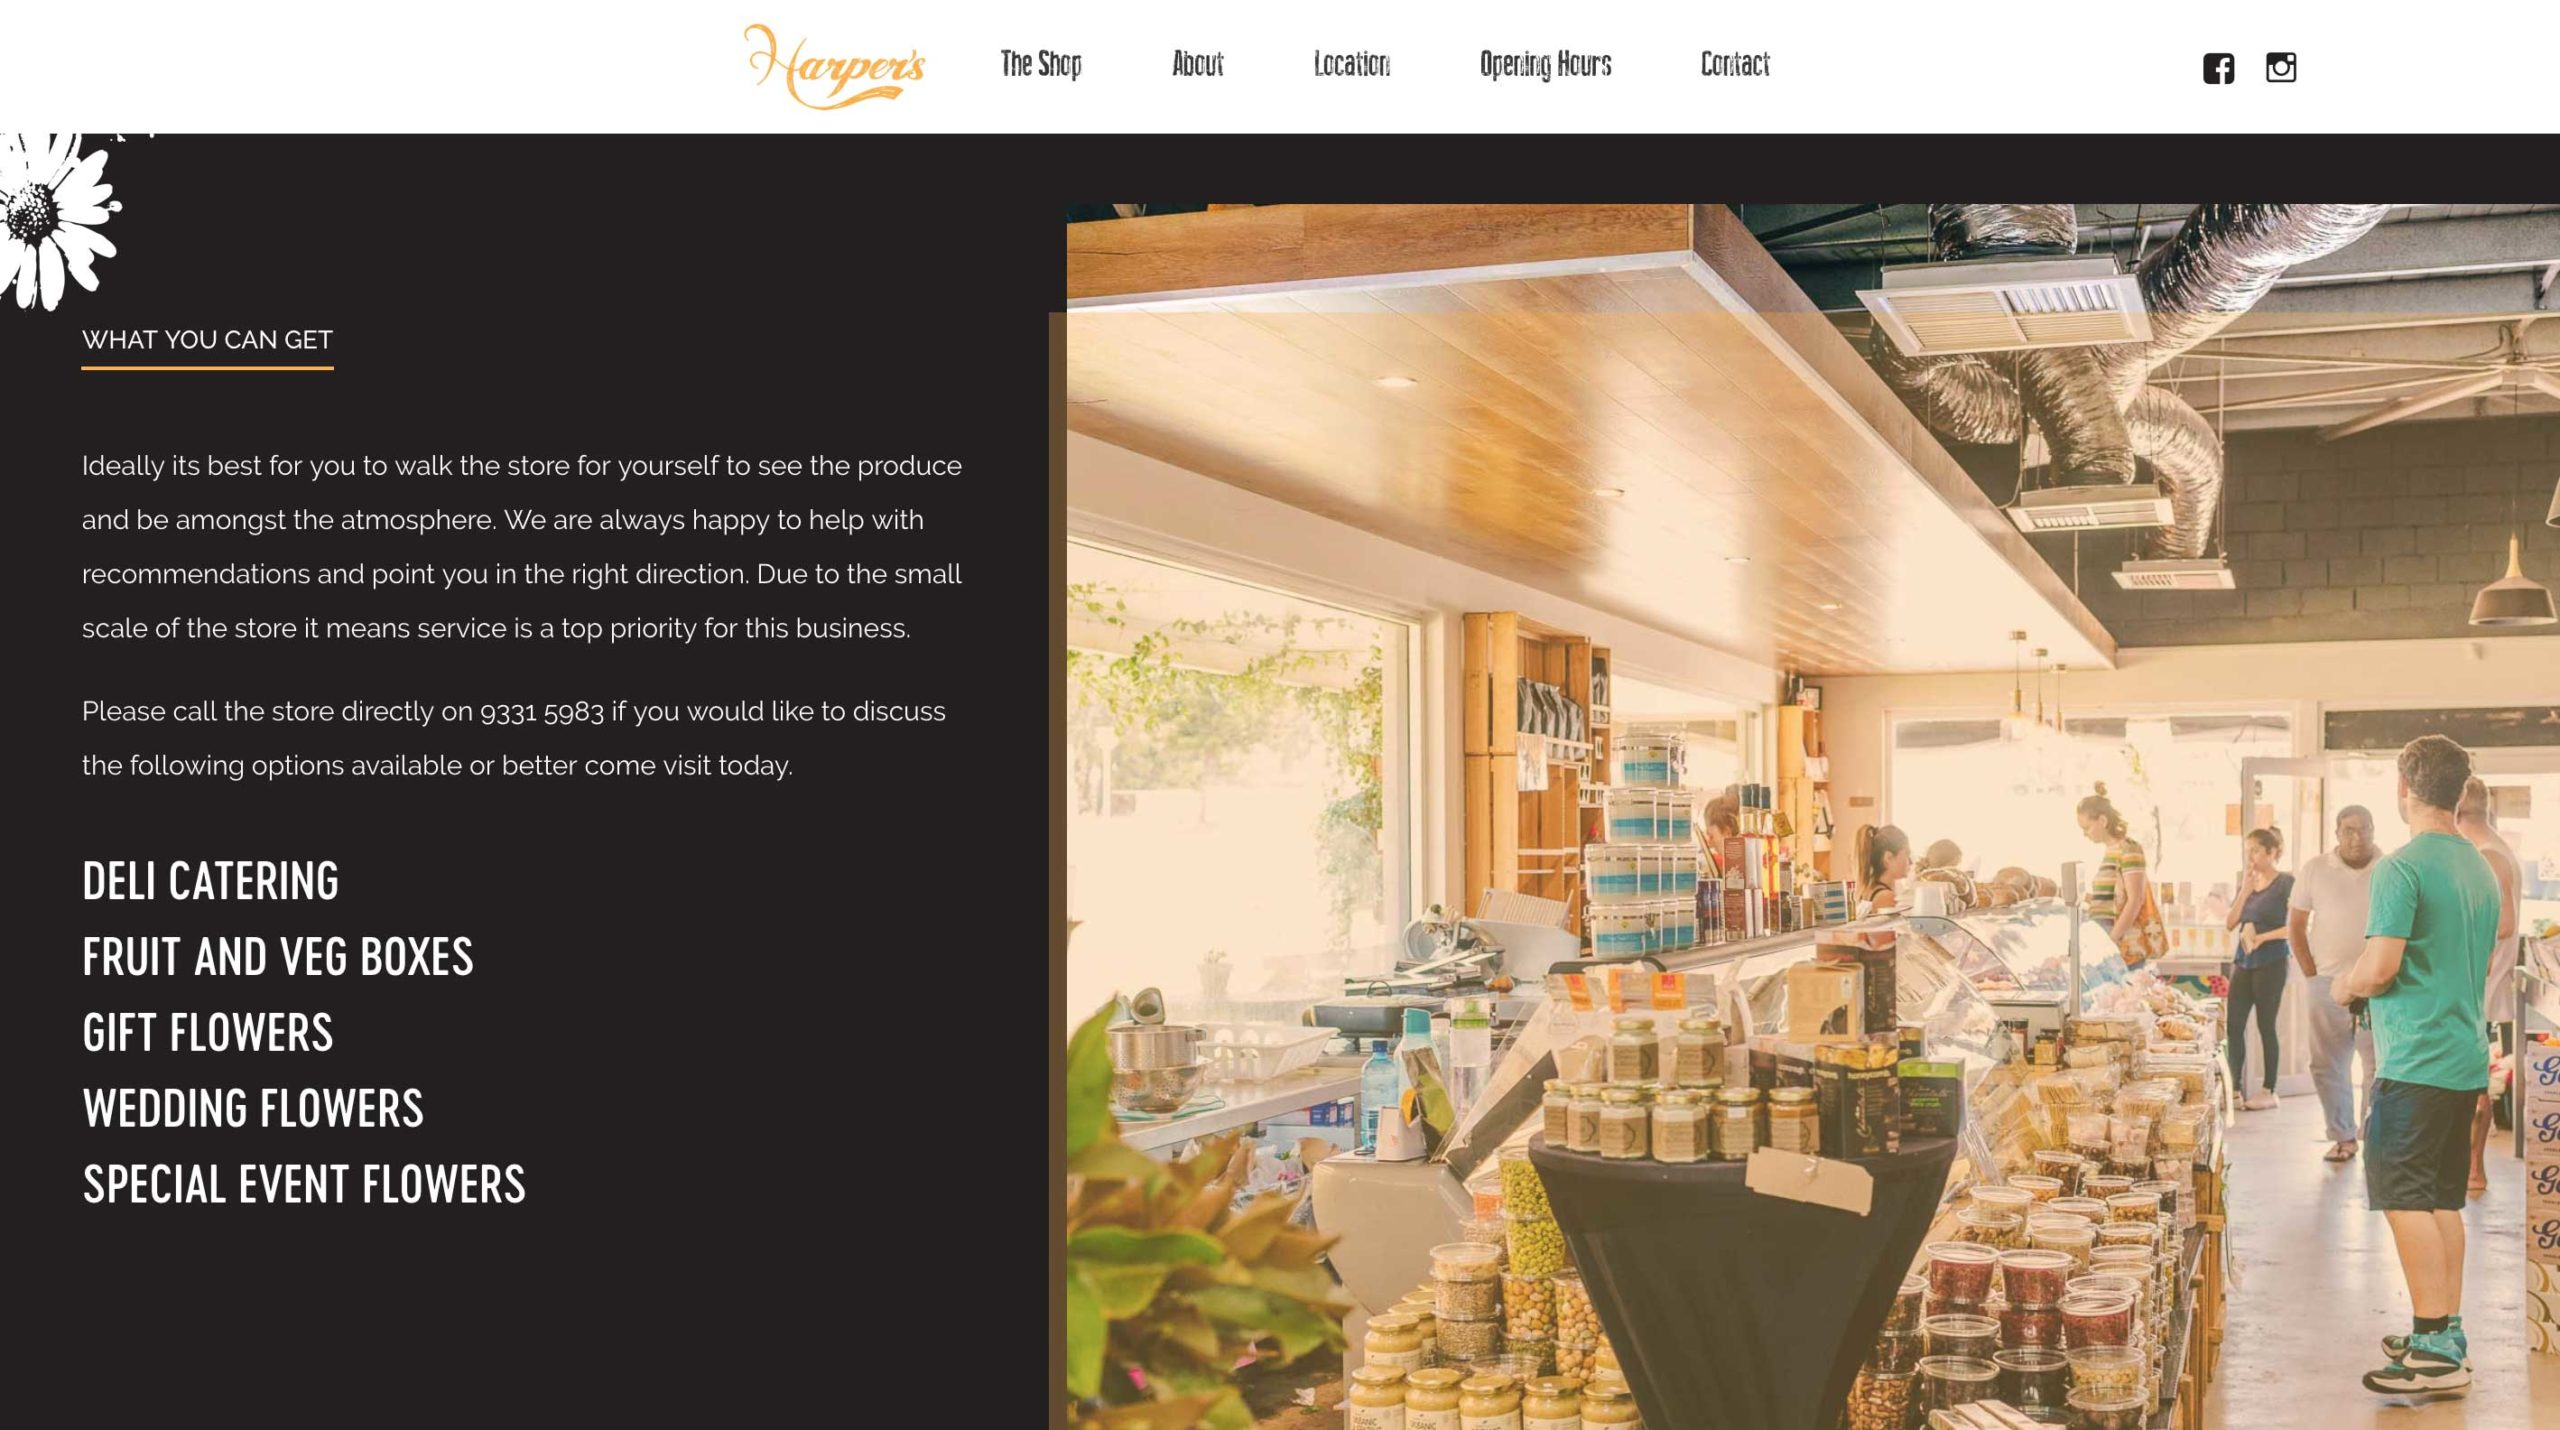 Harpers-Food-Market-(2)-web